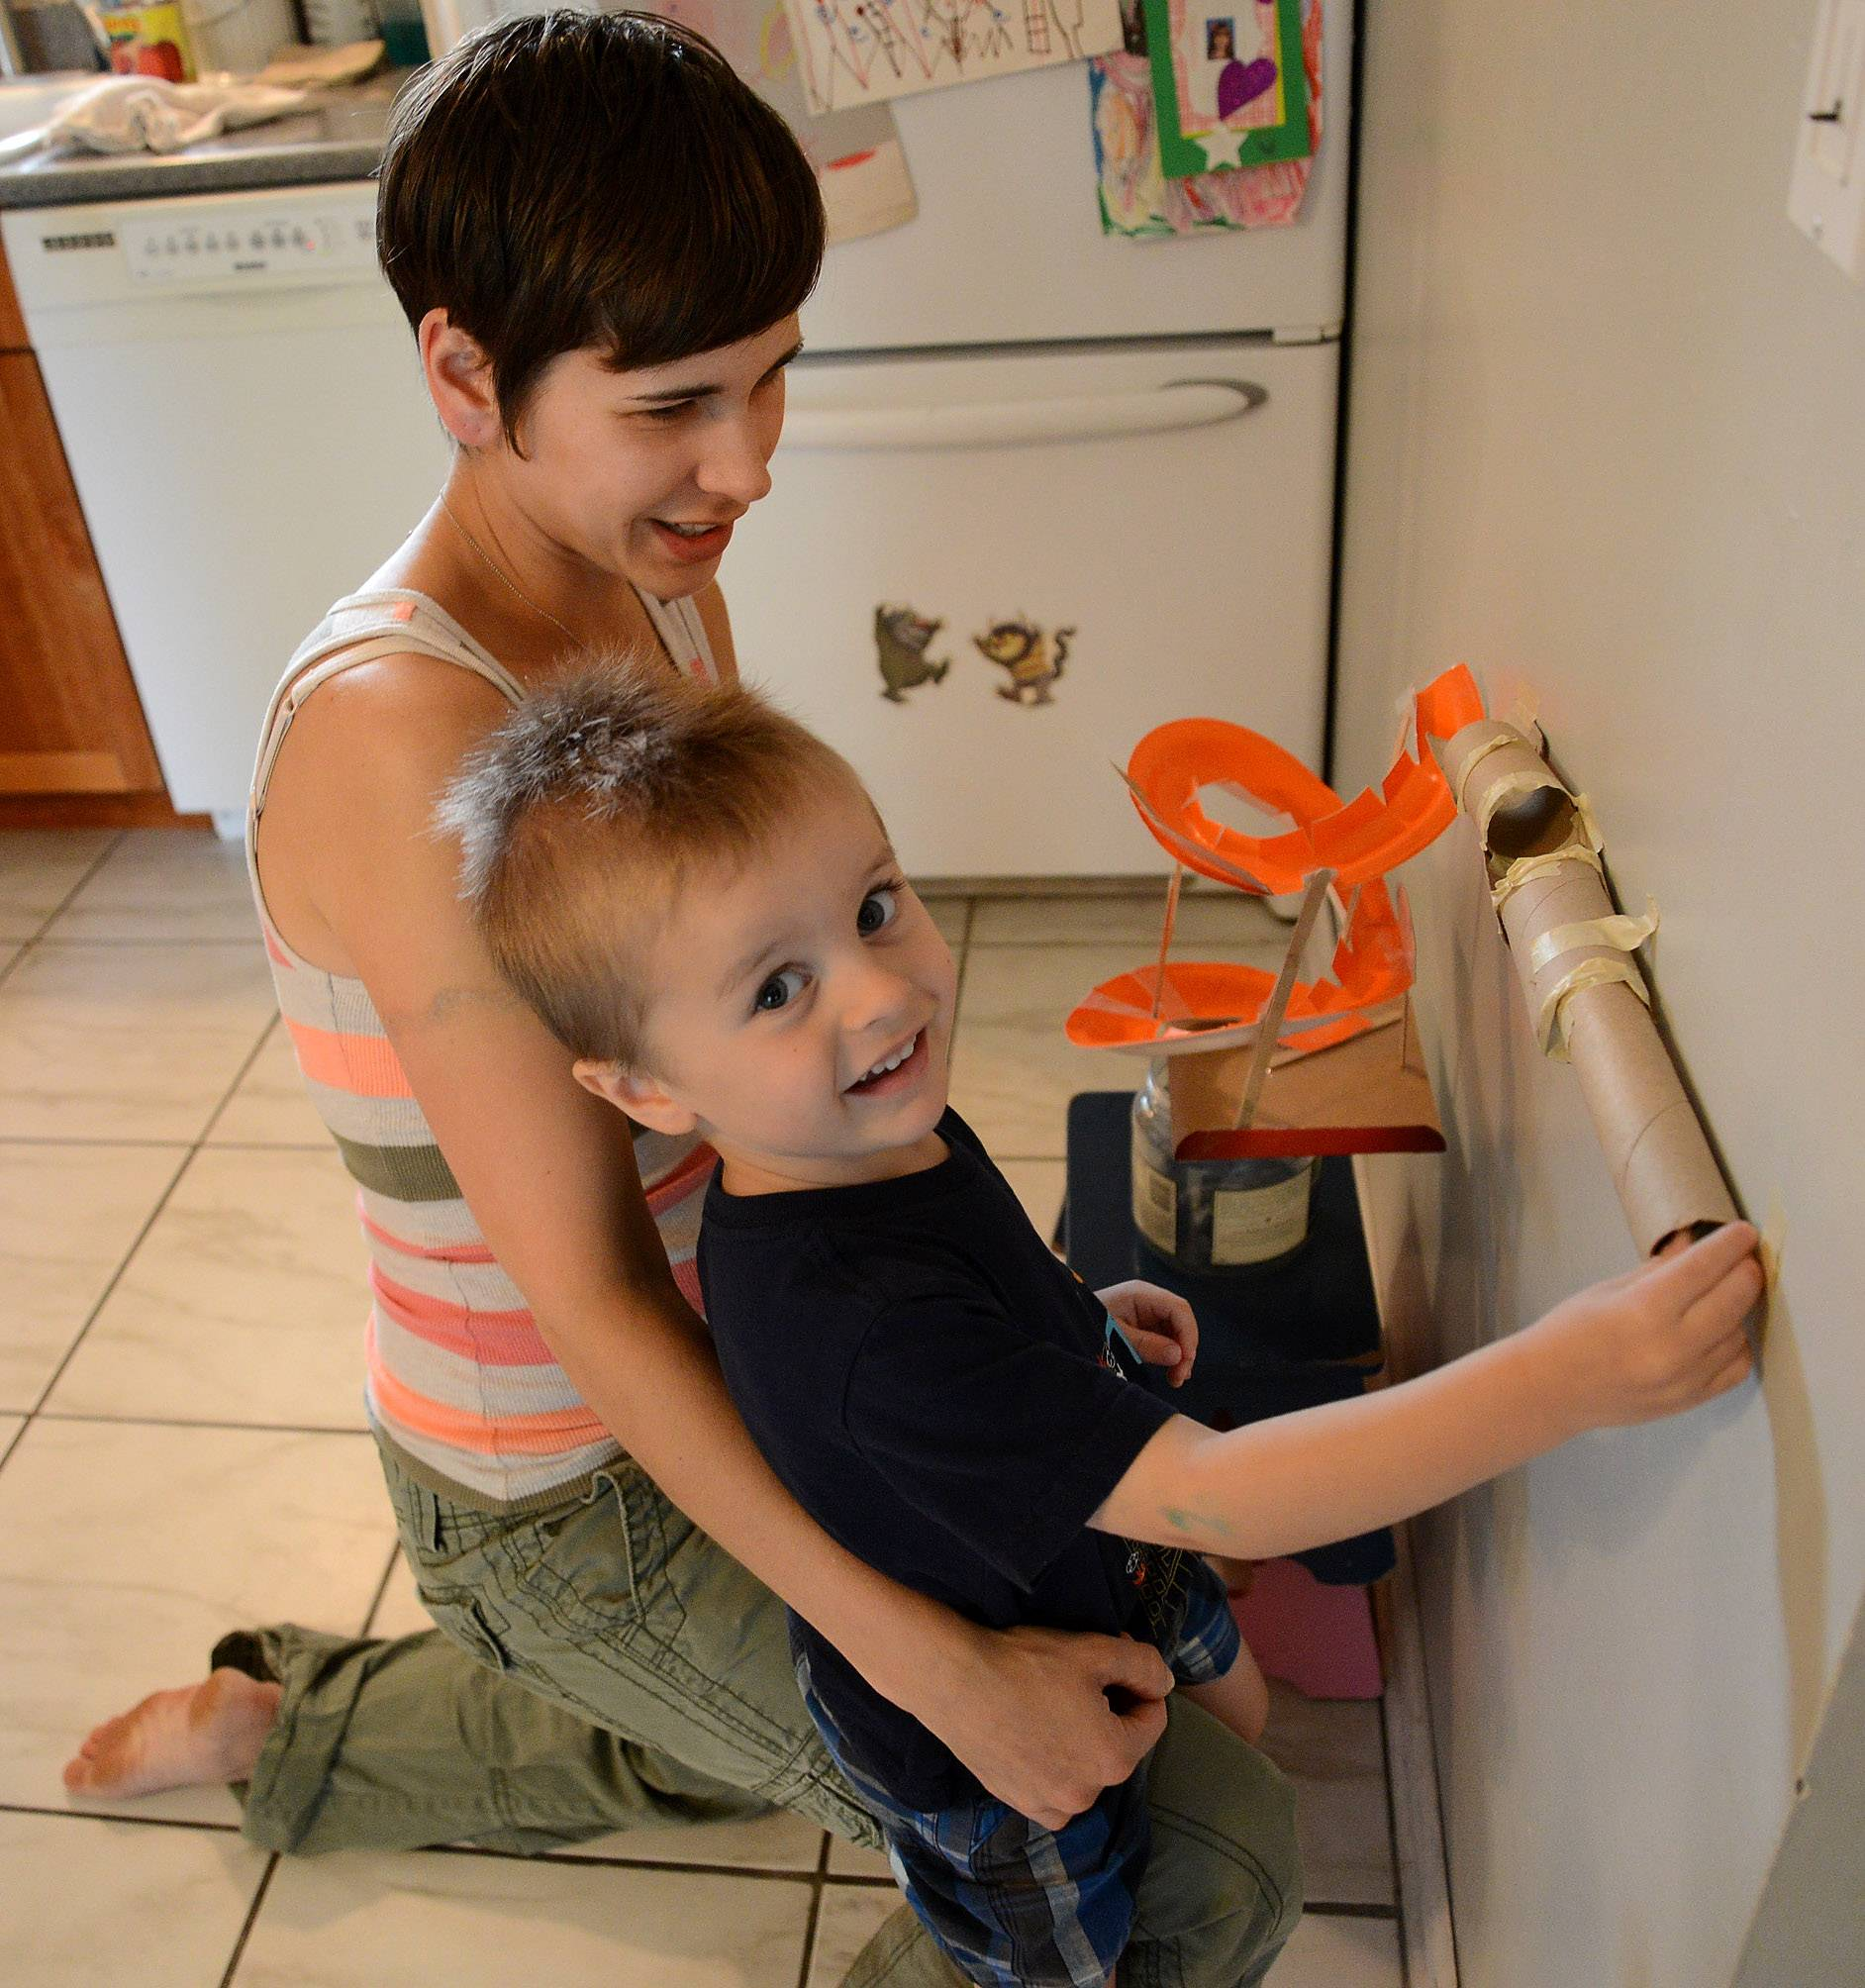 Benjamin Anderson and his mom demonstrate one of their marble runs they have set up in their kitchen.